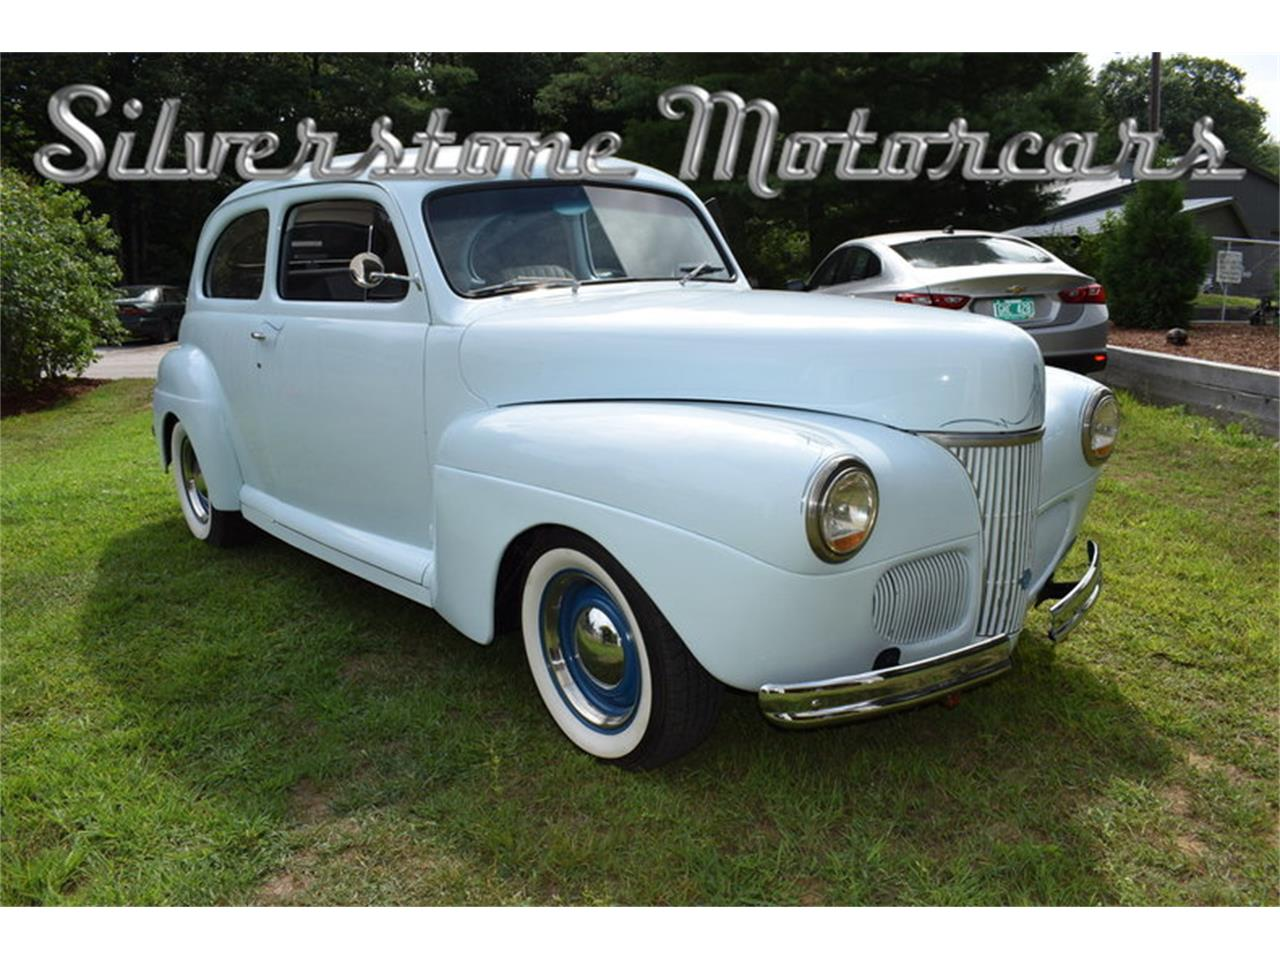 1941 Ford Sedan Vin Number Location Opera Coupe Large Picture Of 1280x960